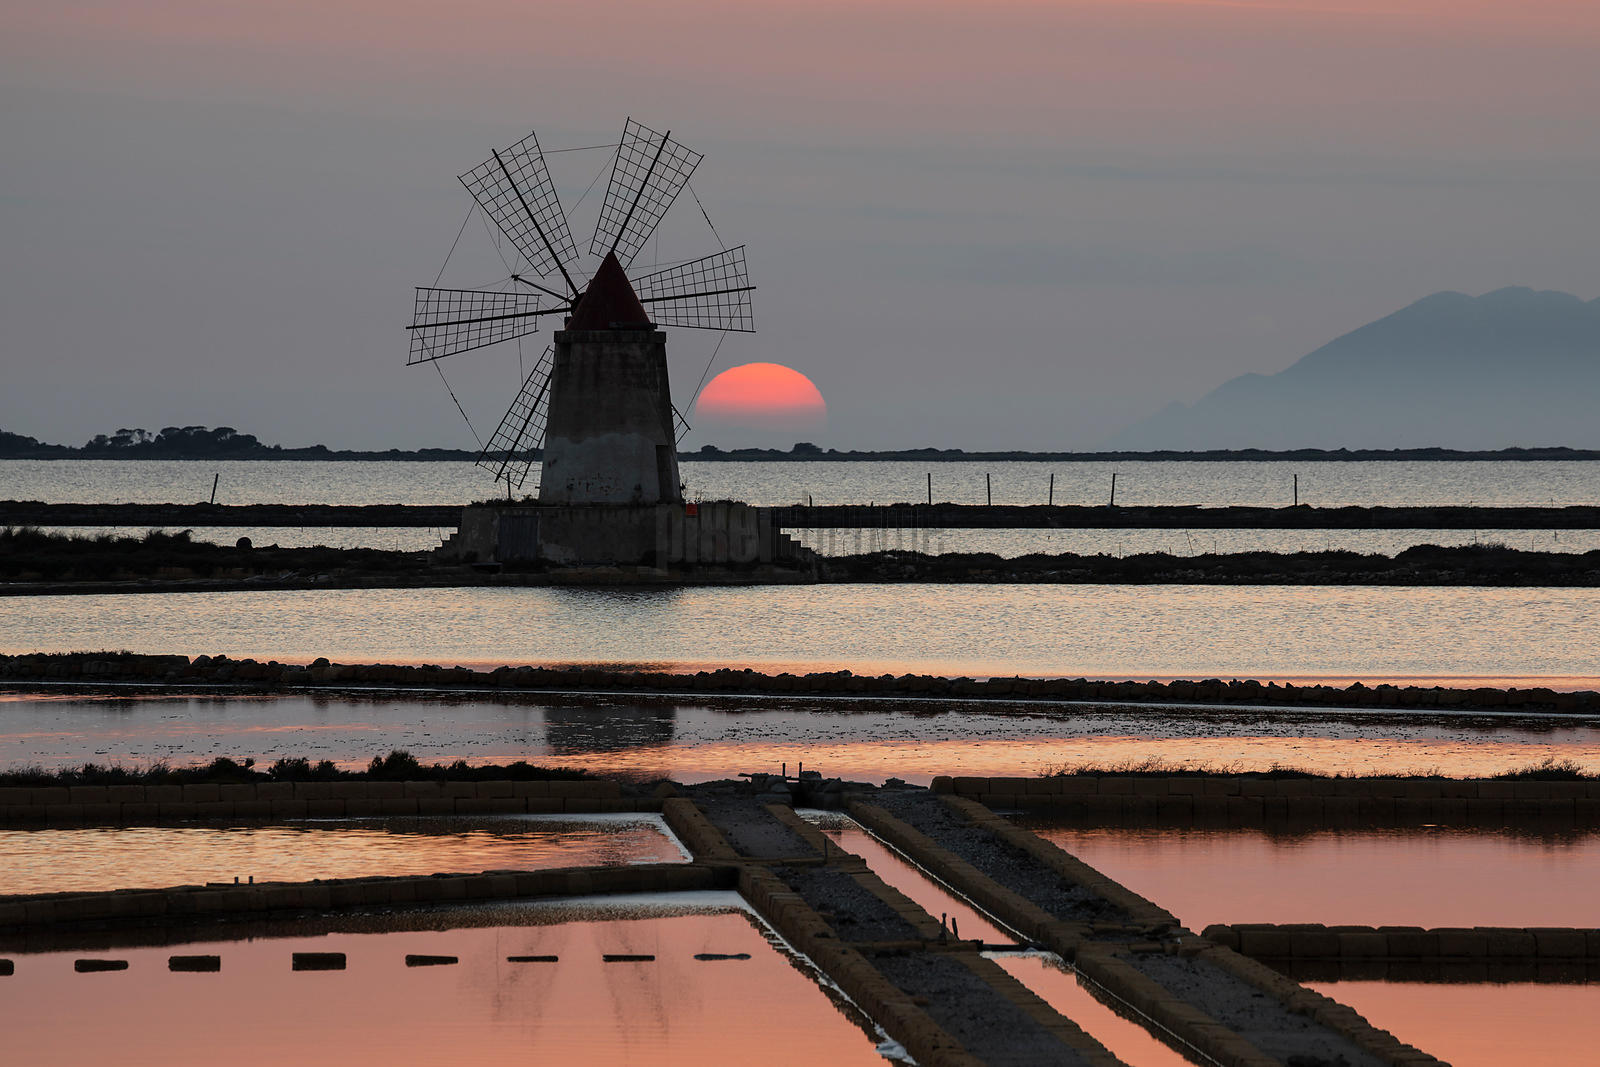 Saline and Windmill at the Laguna dello Stagnone